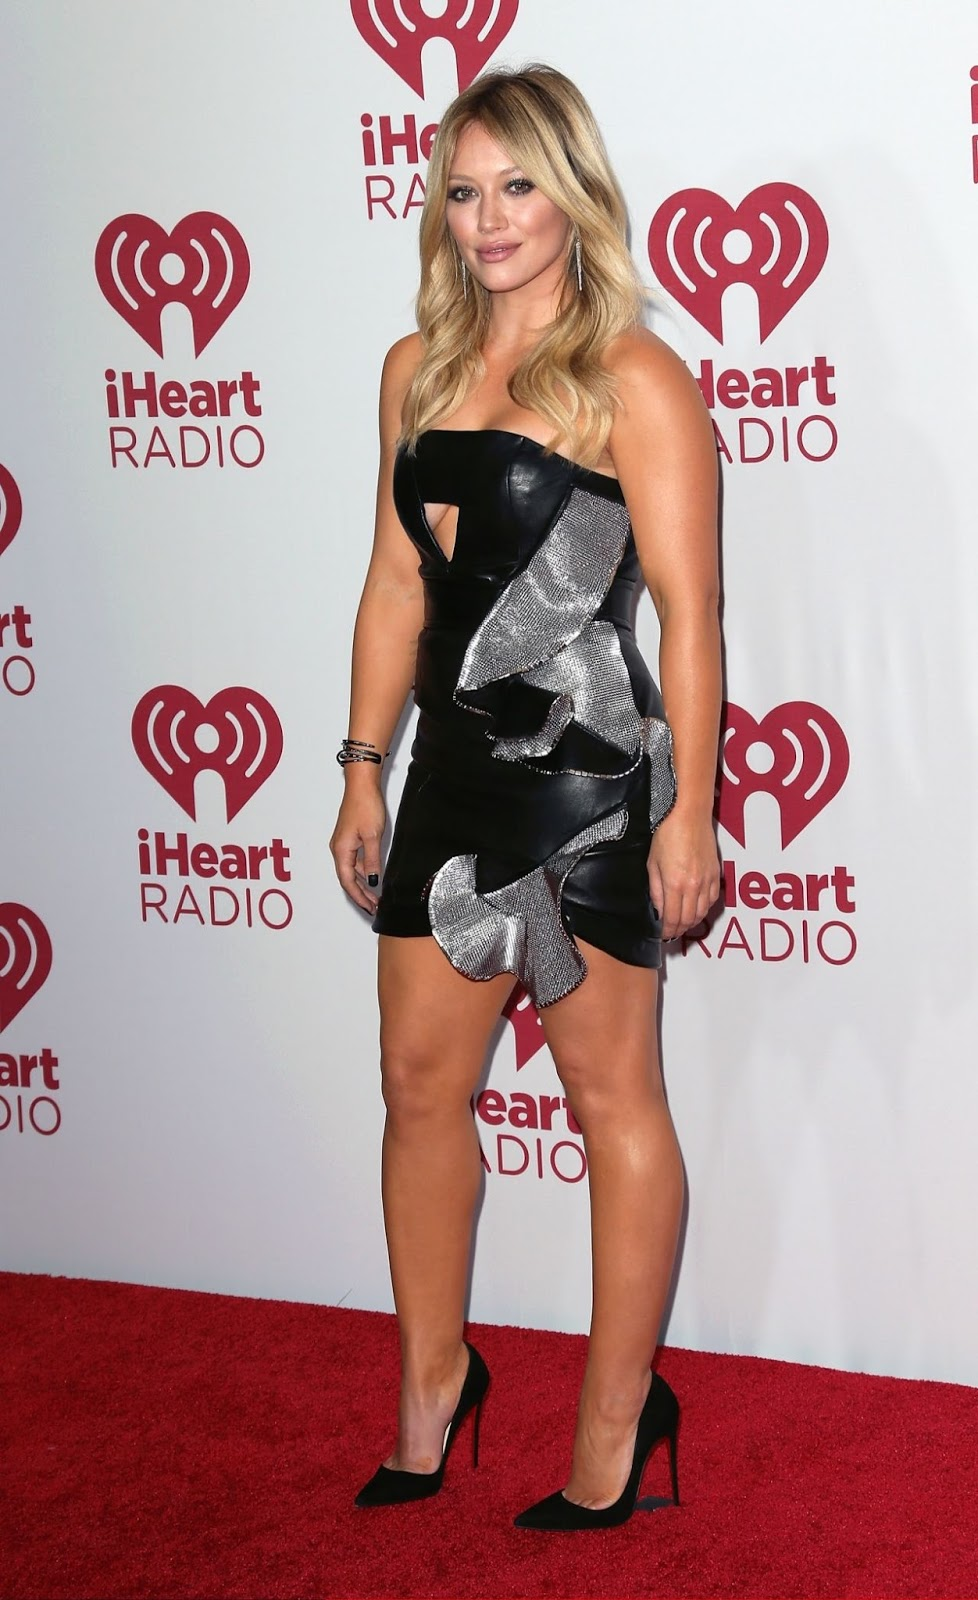 Hilary Duff wears a leather mini dress to the 2014 iHeart Radio Music Festival